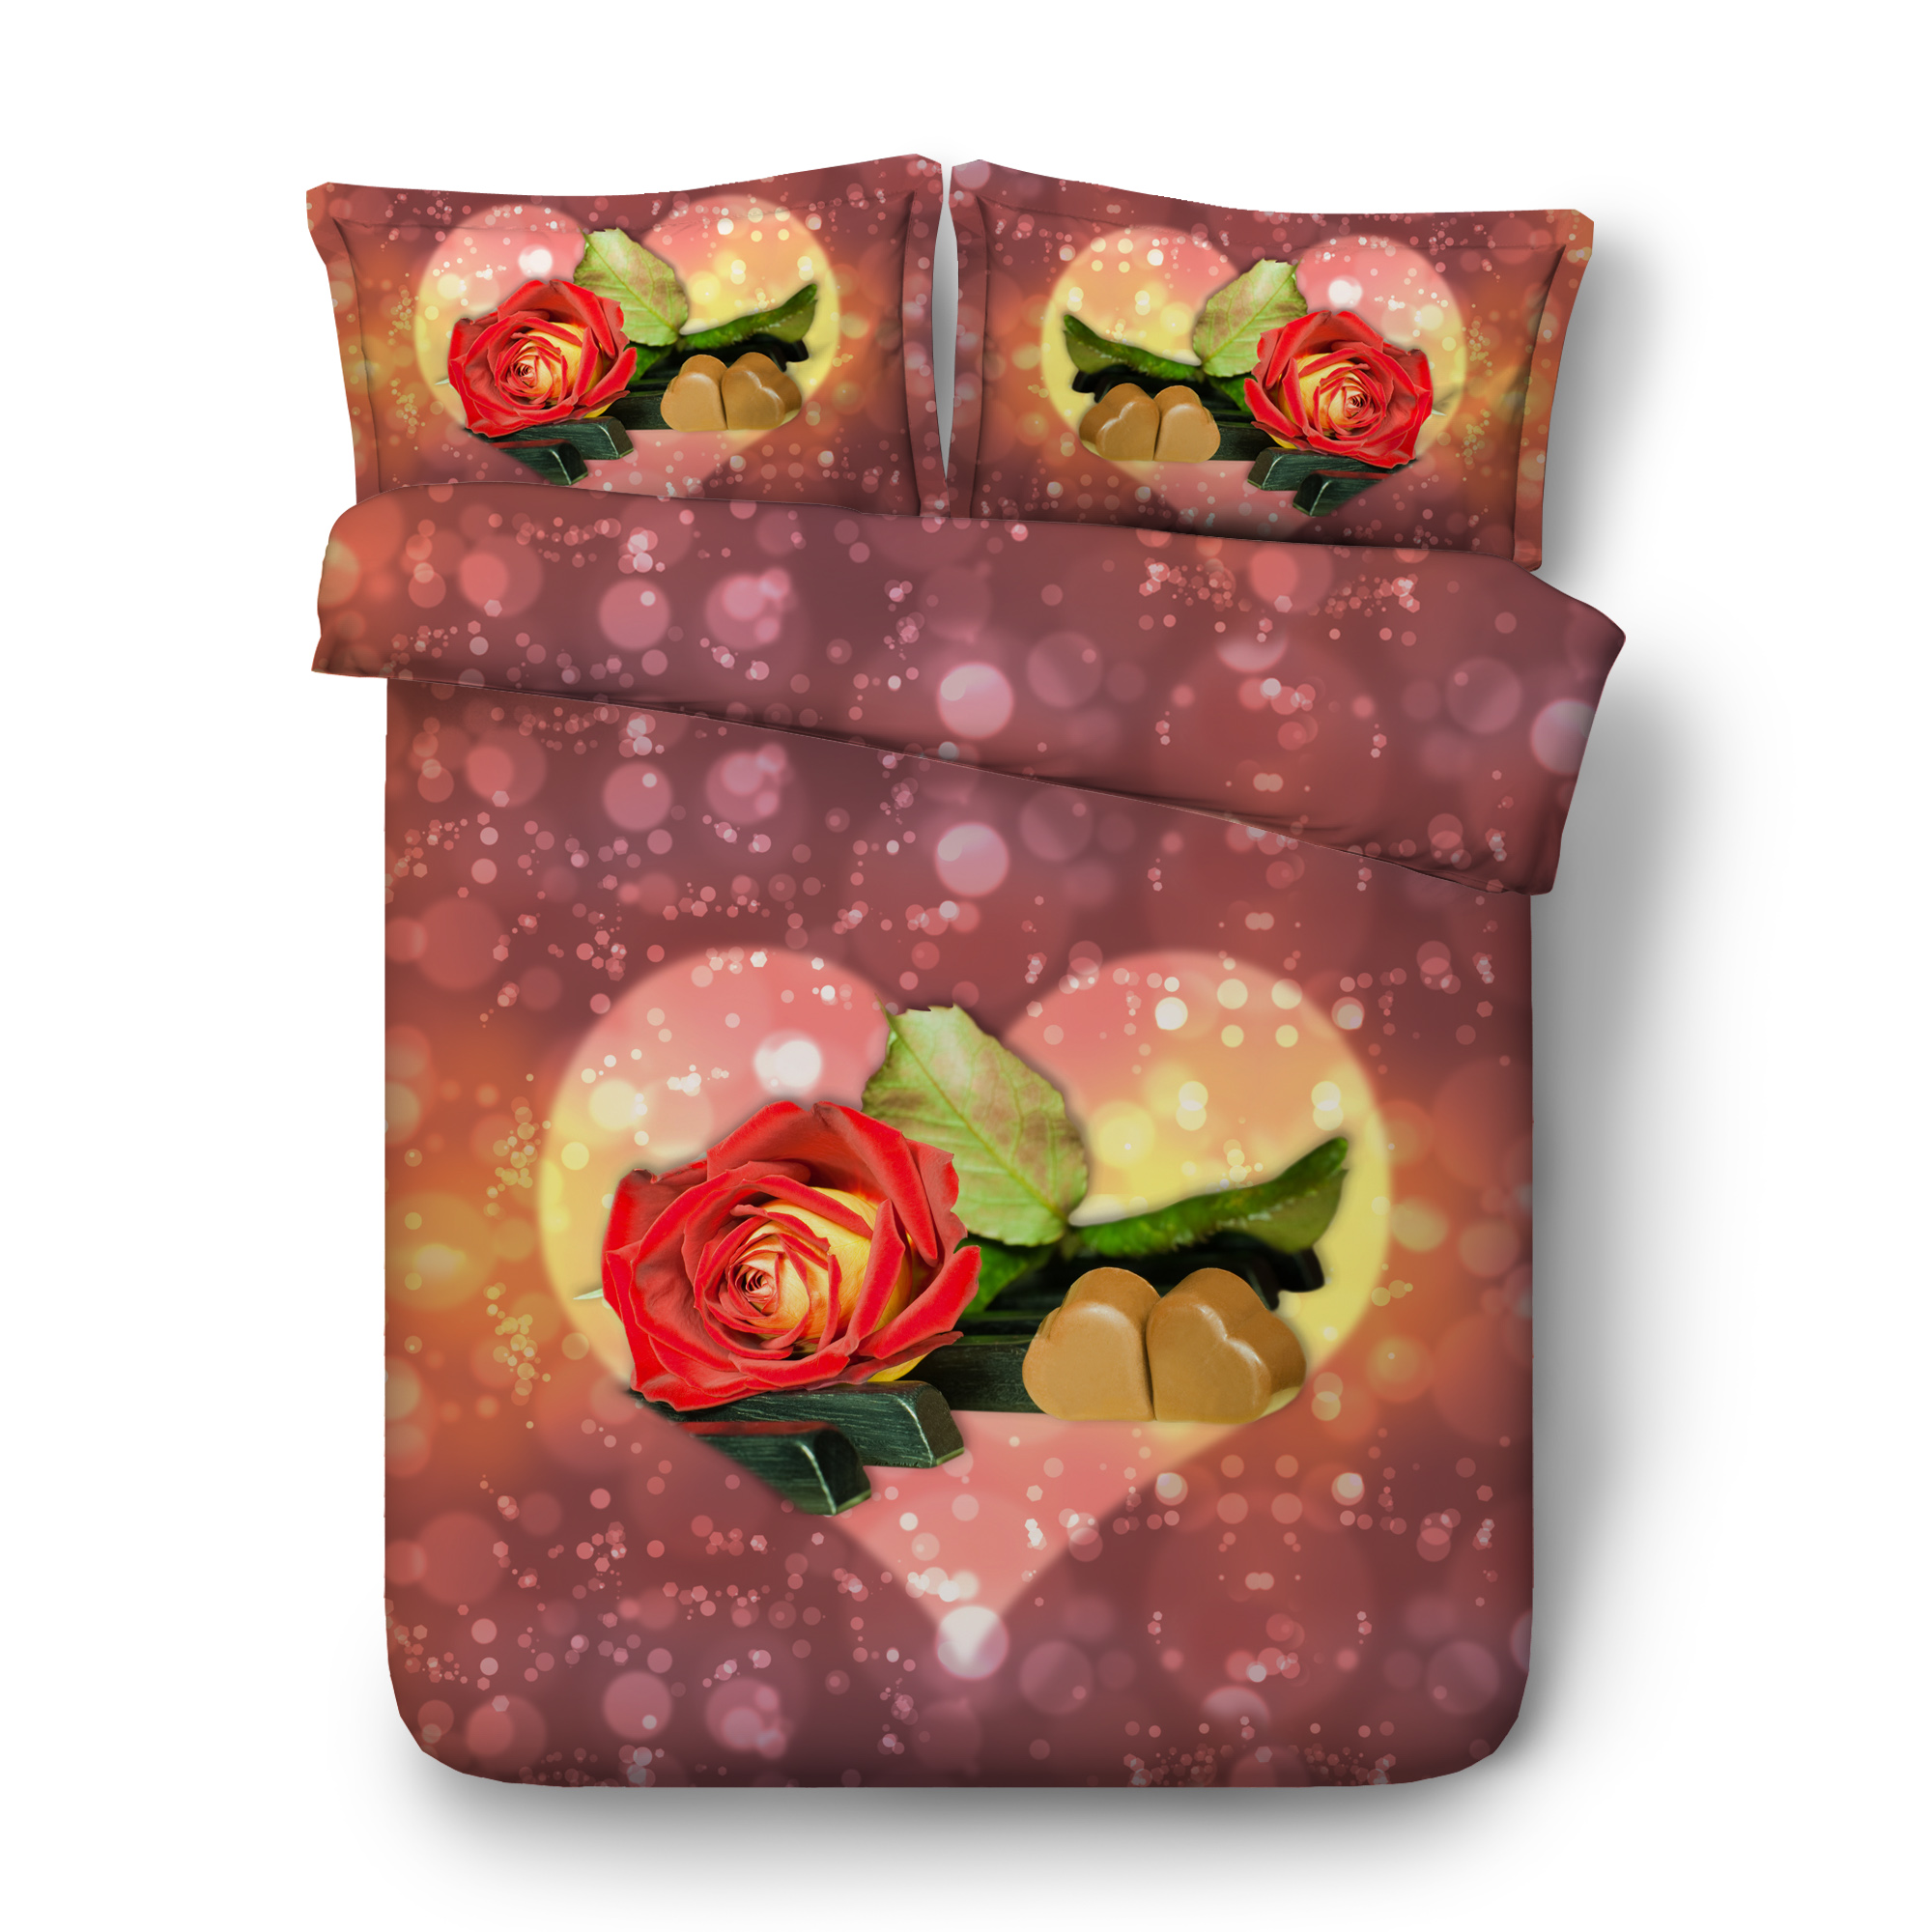 Love roses Digital print Bedding Set  Quilt Cover  Design Bed Set Bohemian a Mini Van Bedclothes 3pcs Large size 260*225cm JF544Love roses Digital print Bedding Set  Quilt Cover  Design Bed Set Bohemian a Mini Van Bedclothes 3pcs Large size 260*225cm JF544